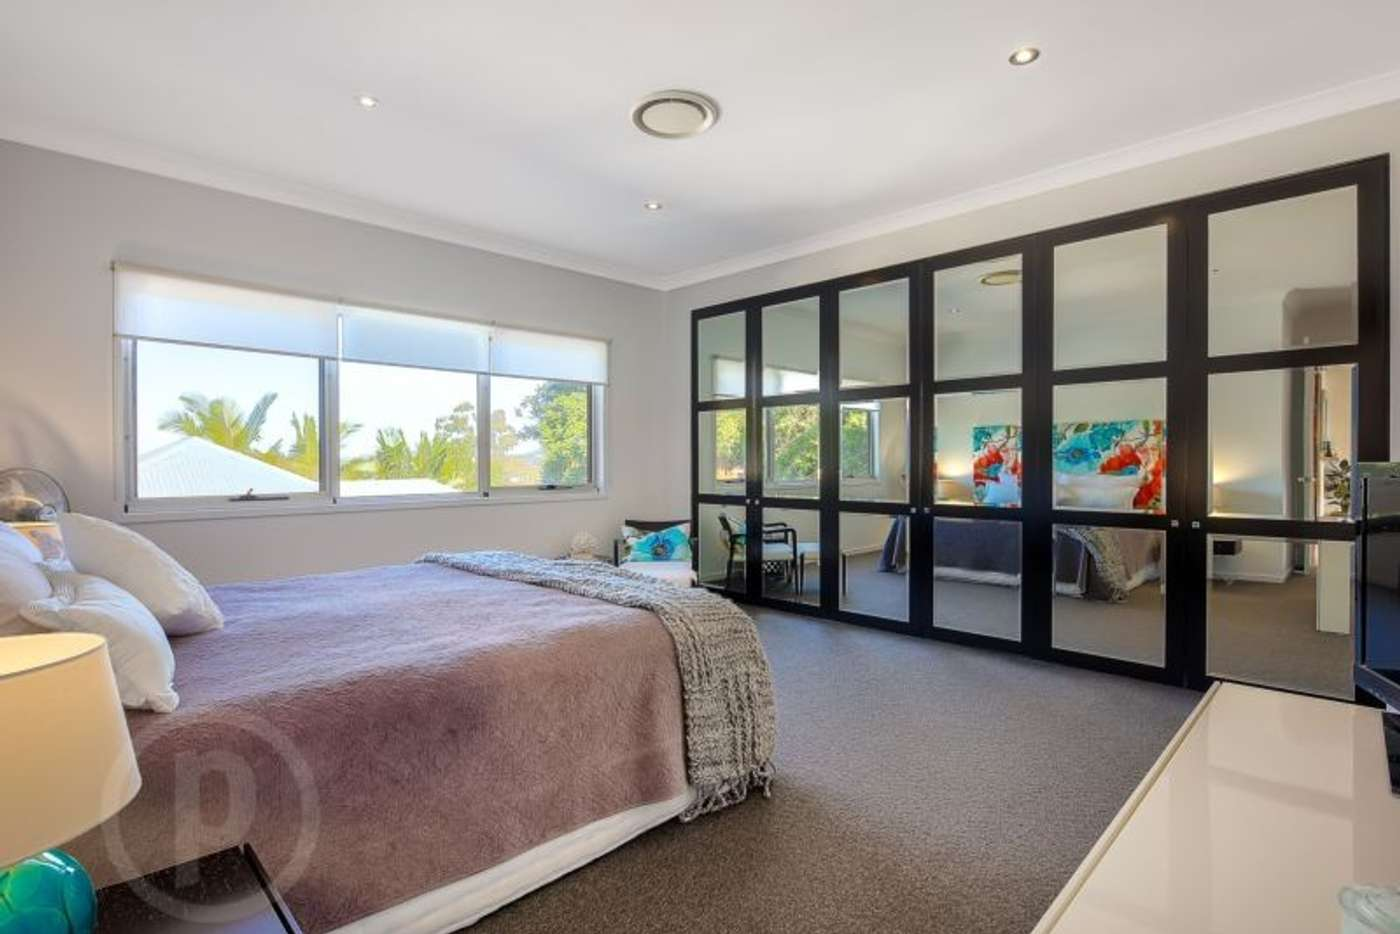 Sixth view of Homely house listing, 30 Lansdowne Street, Newmarket QLD 4051